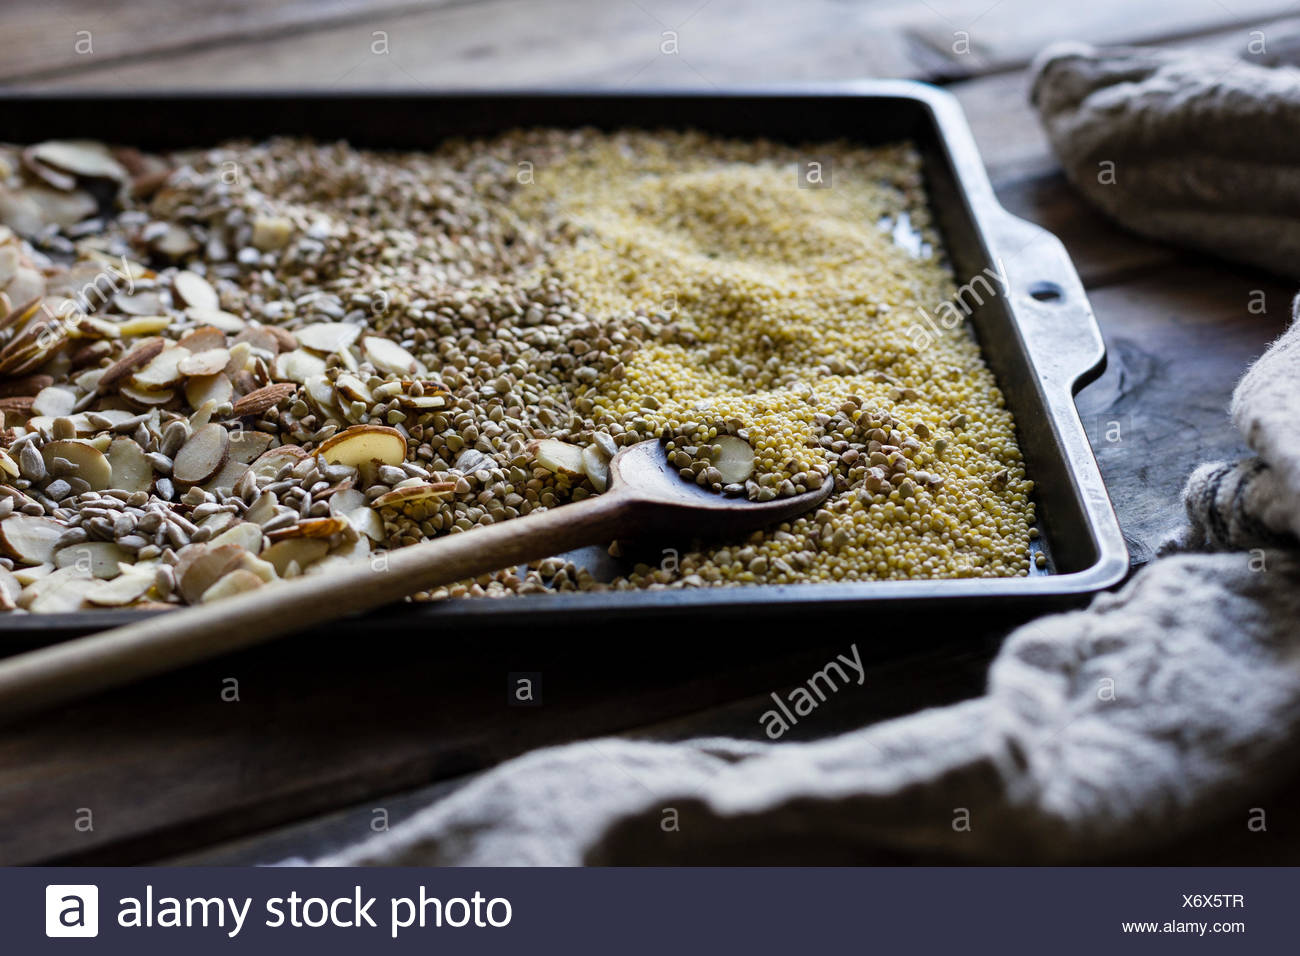 Cooking of a Gluten-Free Vegan Nut and Seed Bread - Stock Image